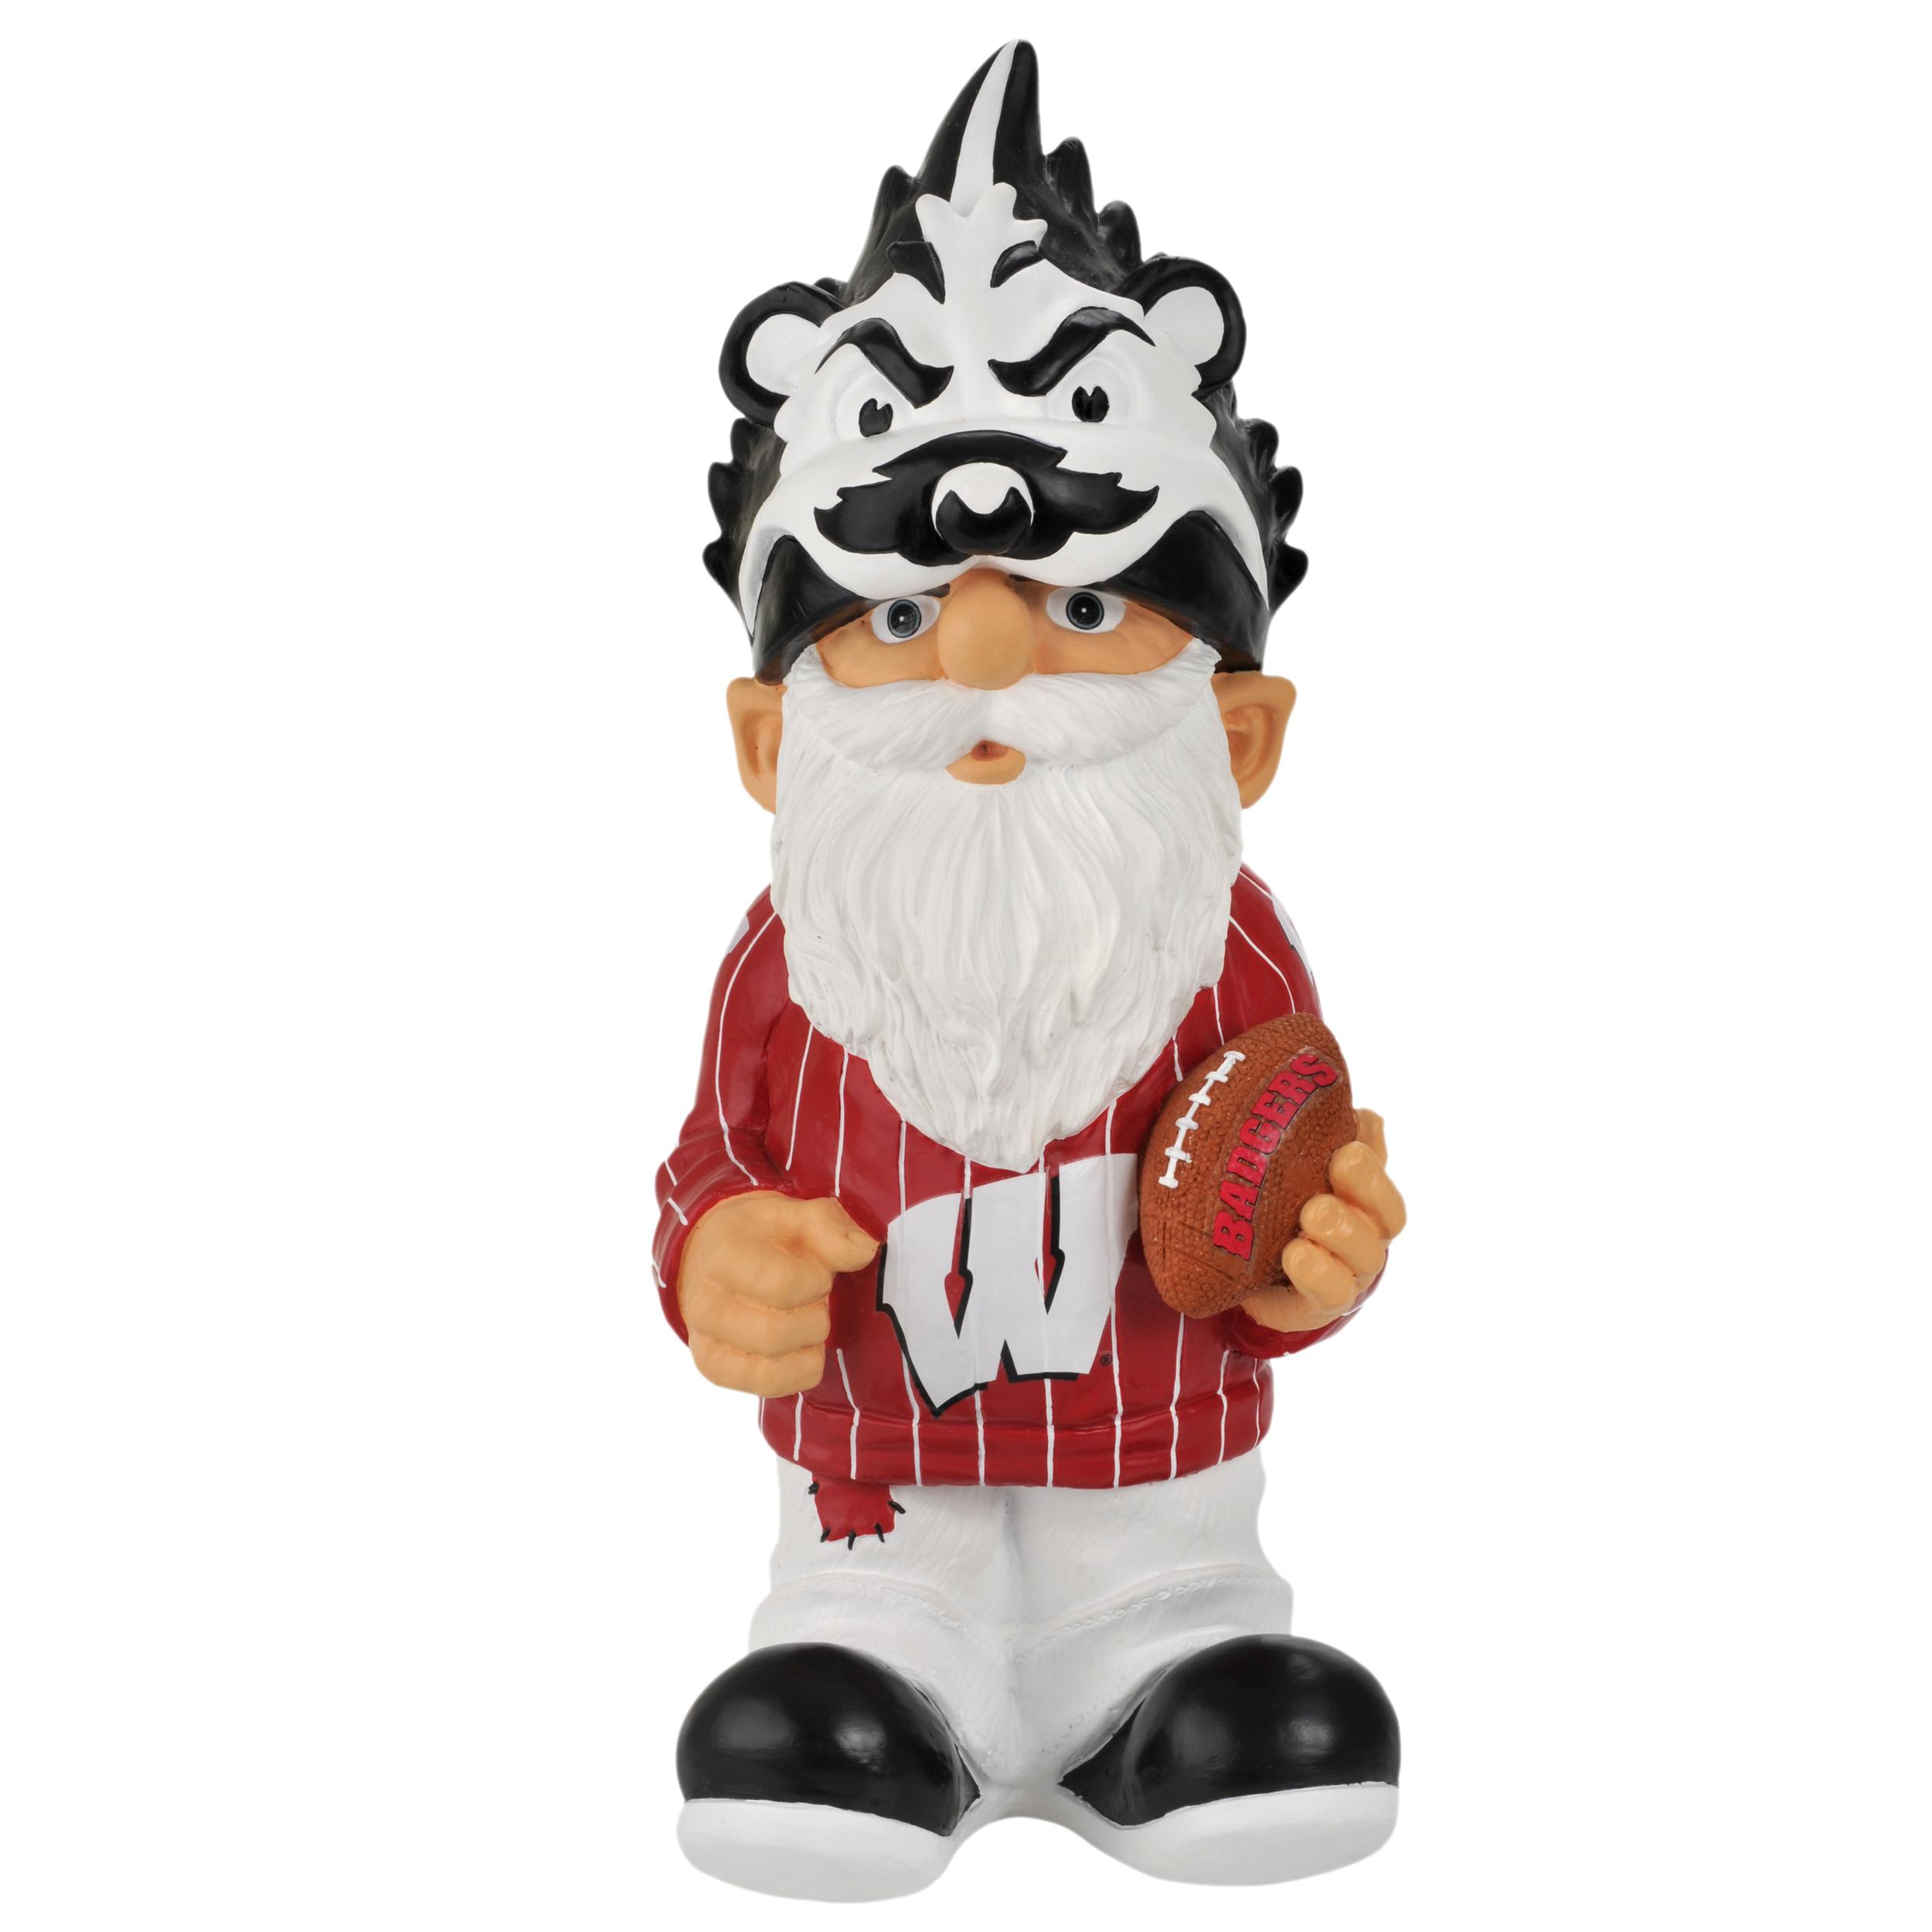 Wisconsin Badgers 11-inch Thematic Garden Gnome - Thumbnail 2